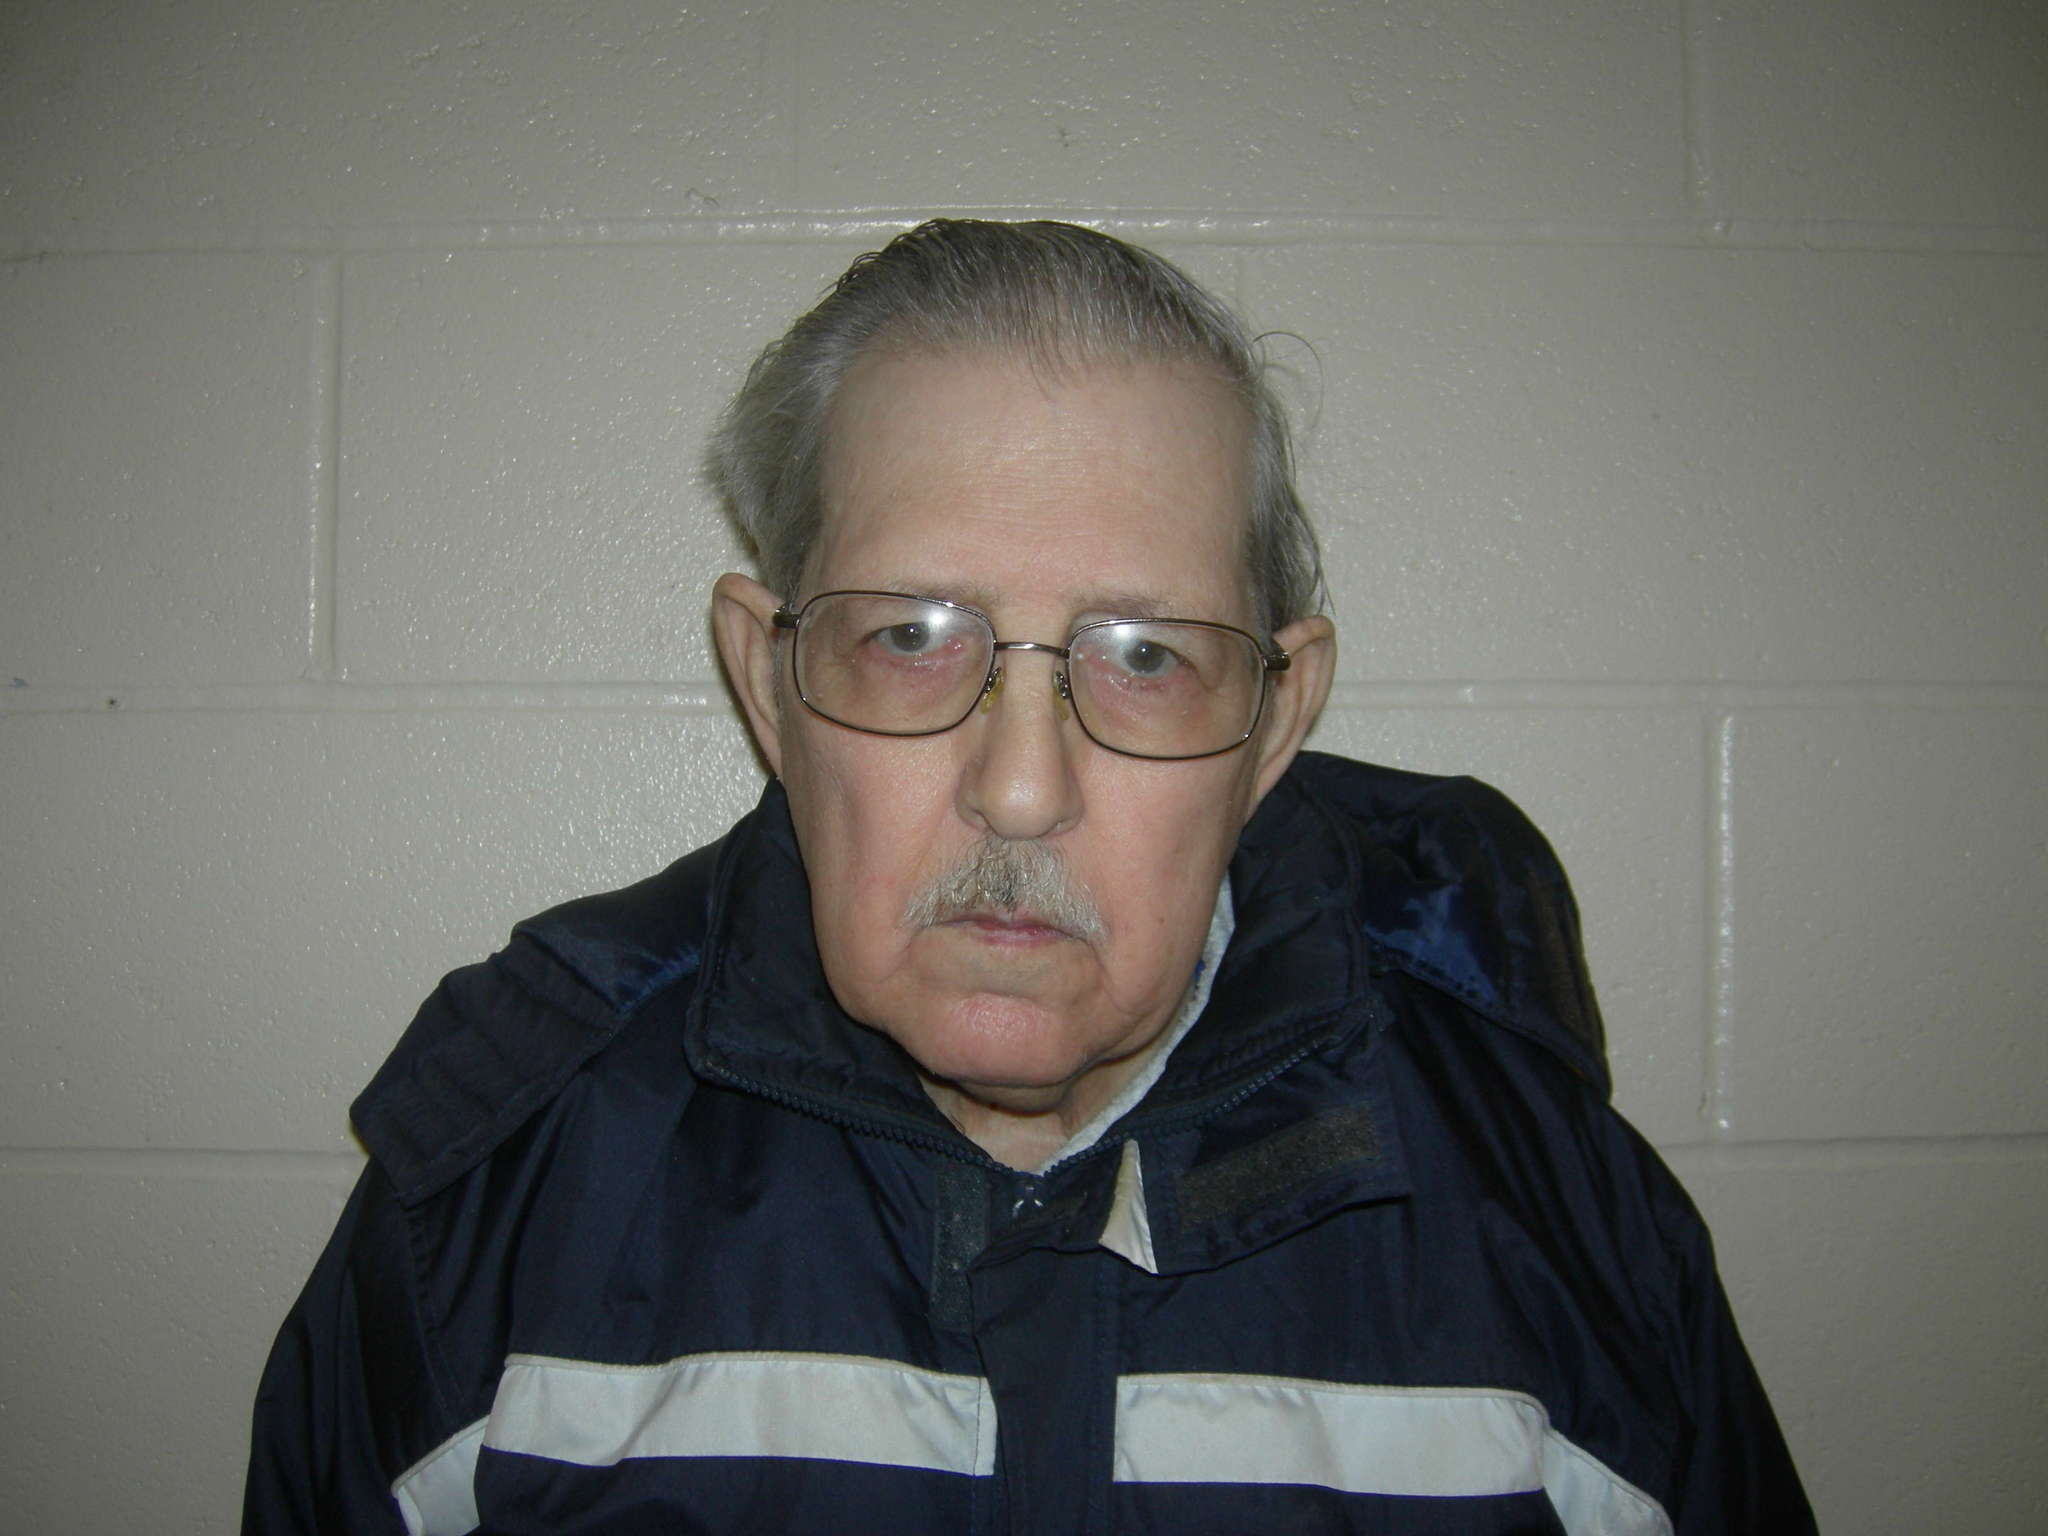 William Motta Sr. was charged with first-degree sexual assault, second-degree unlawful restraint and risk of injury to a minor.